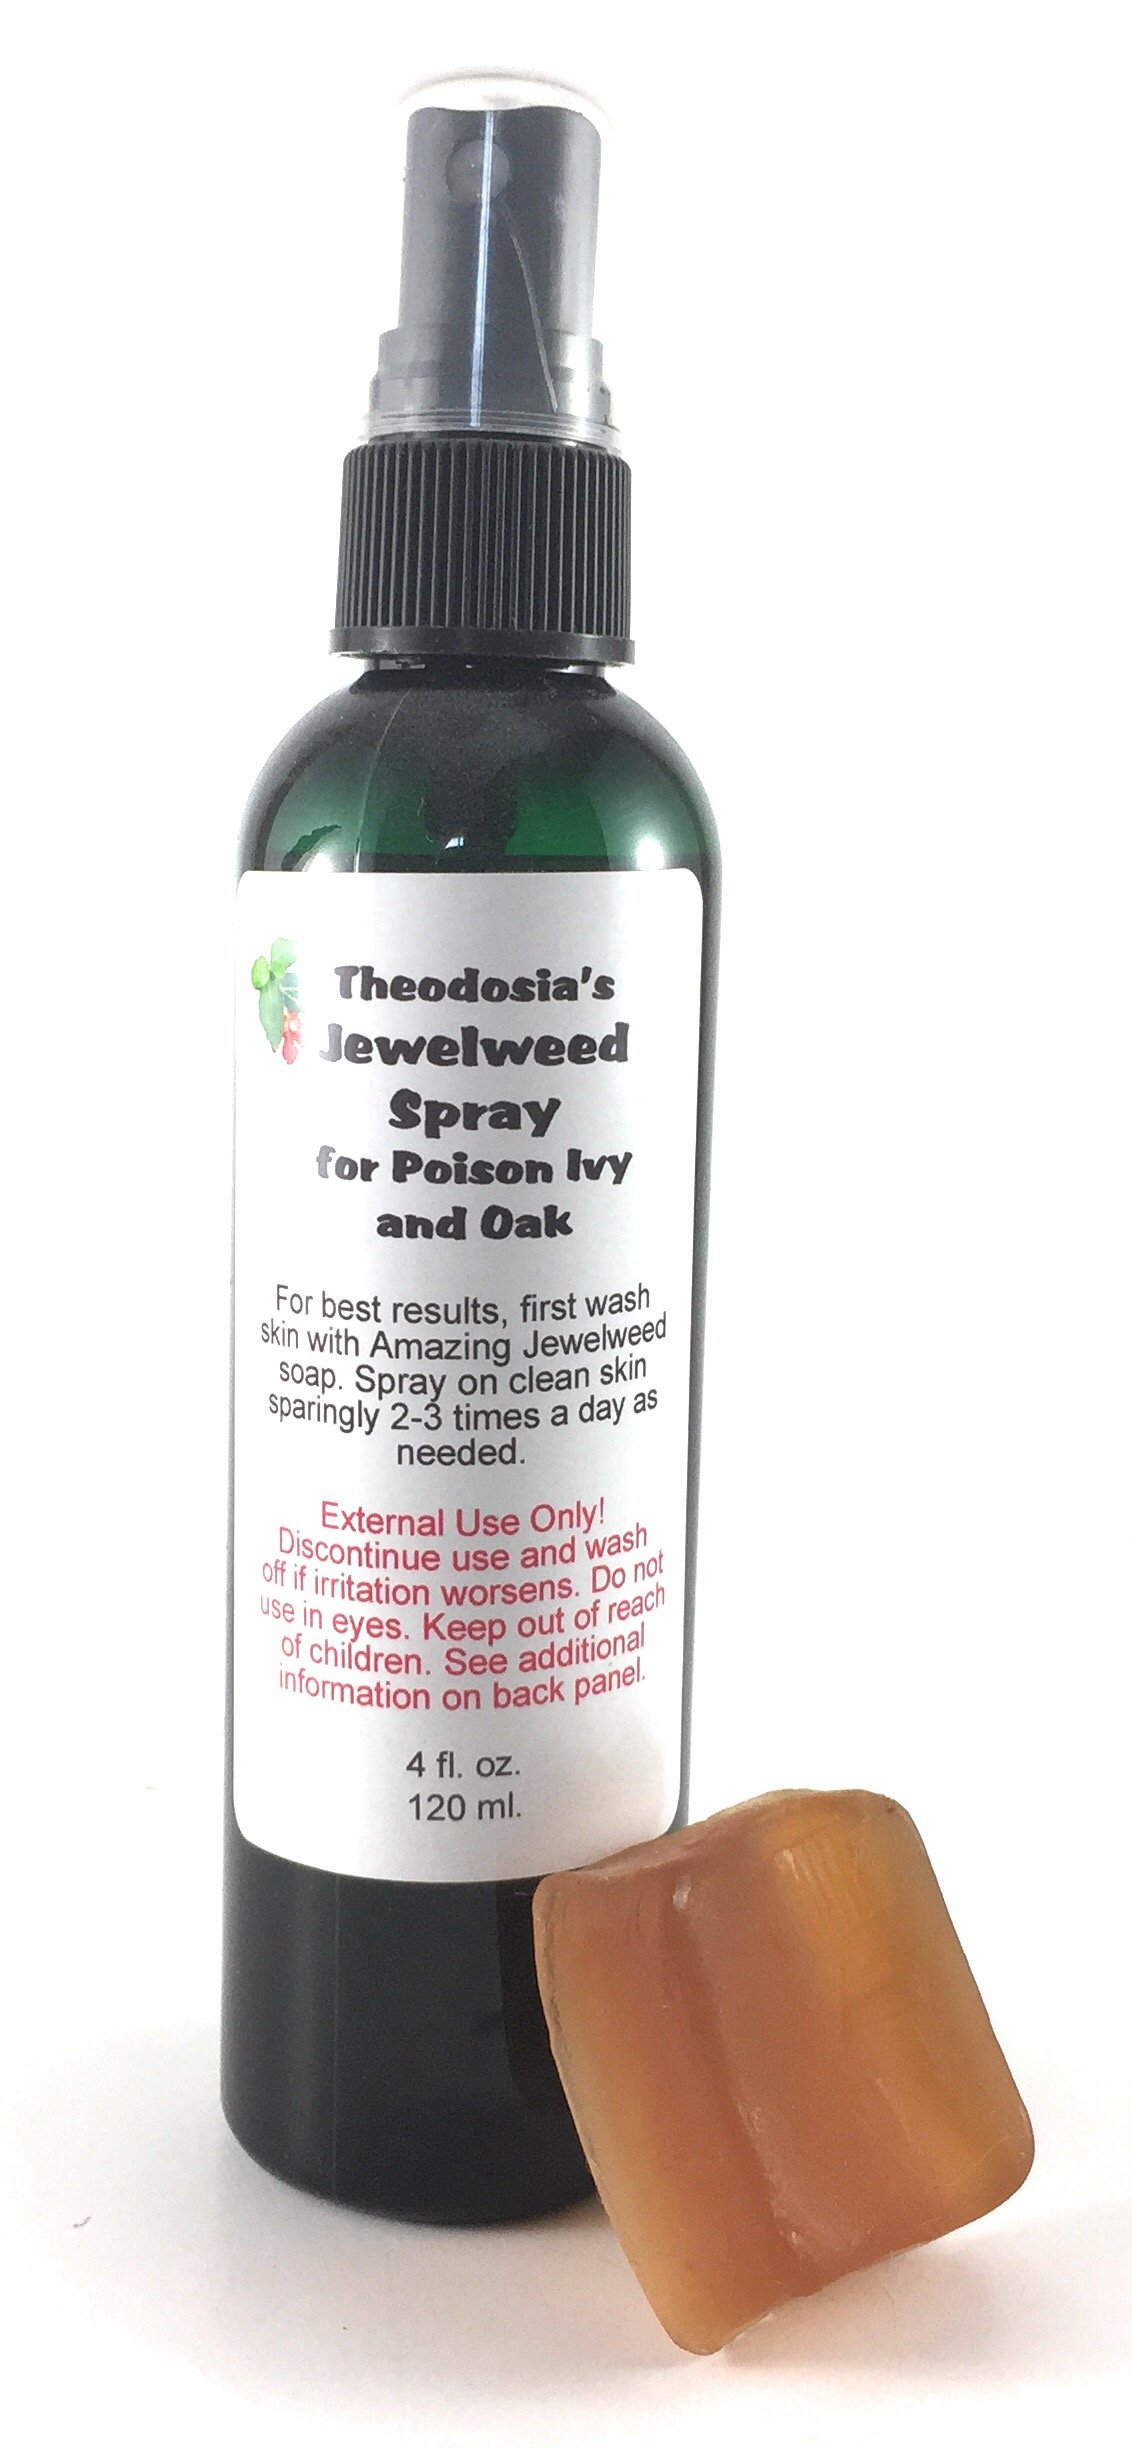 Jewelweed Poison Ivy Spray and Soap for the Relief of Itch and Rash from Oak, Ivy and Sumac with Natural Jewelweed (4oz Spray and .75oz Soap) by Theodosia